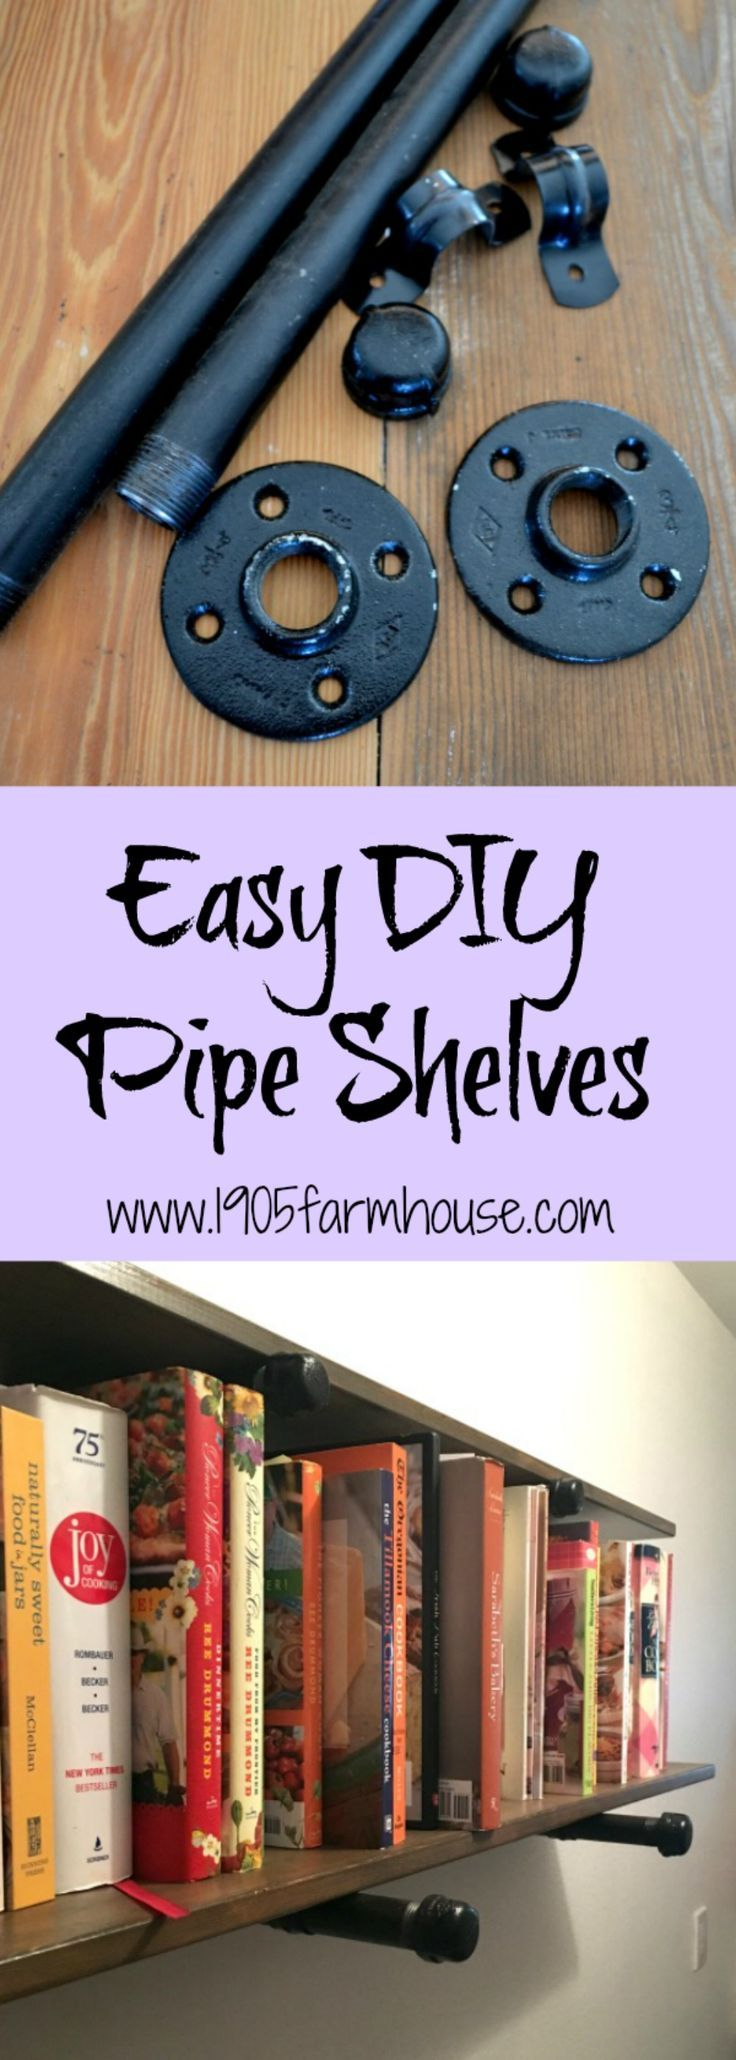 Ideas : Easy DIY pipe shelves built by my plumber husband to hold my cookbook collection